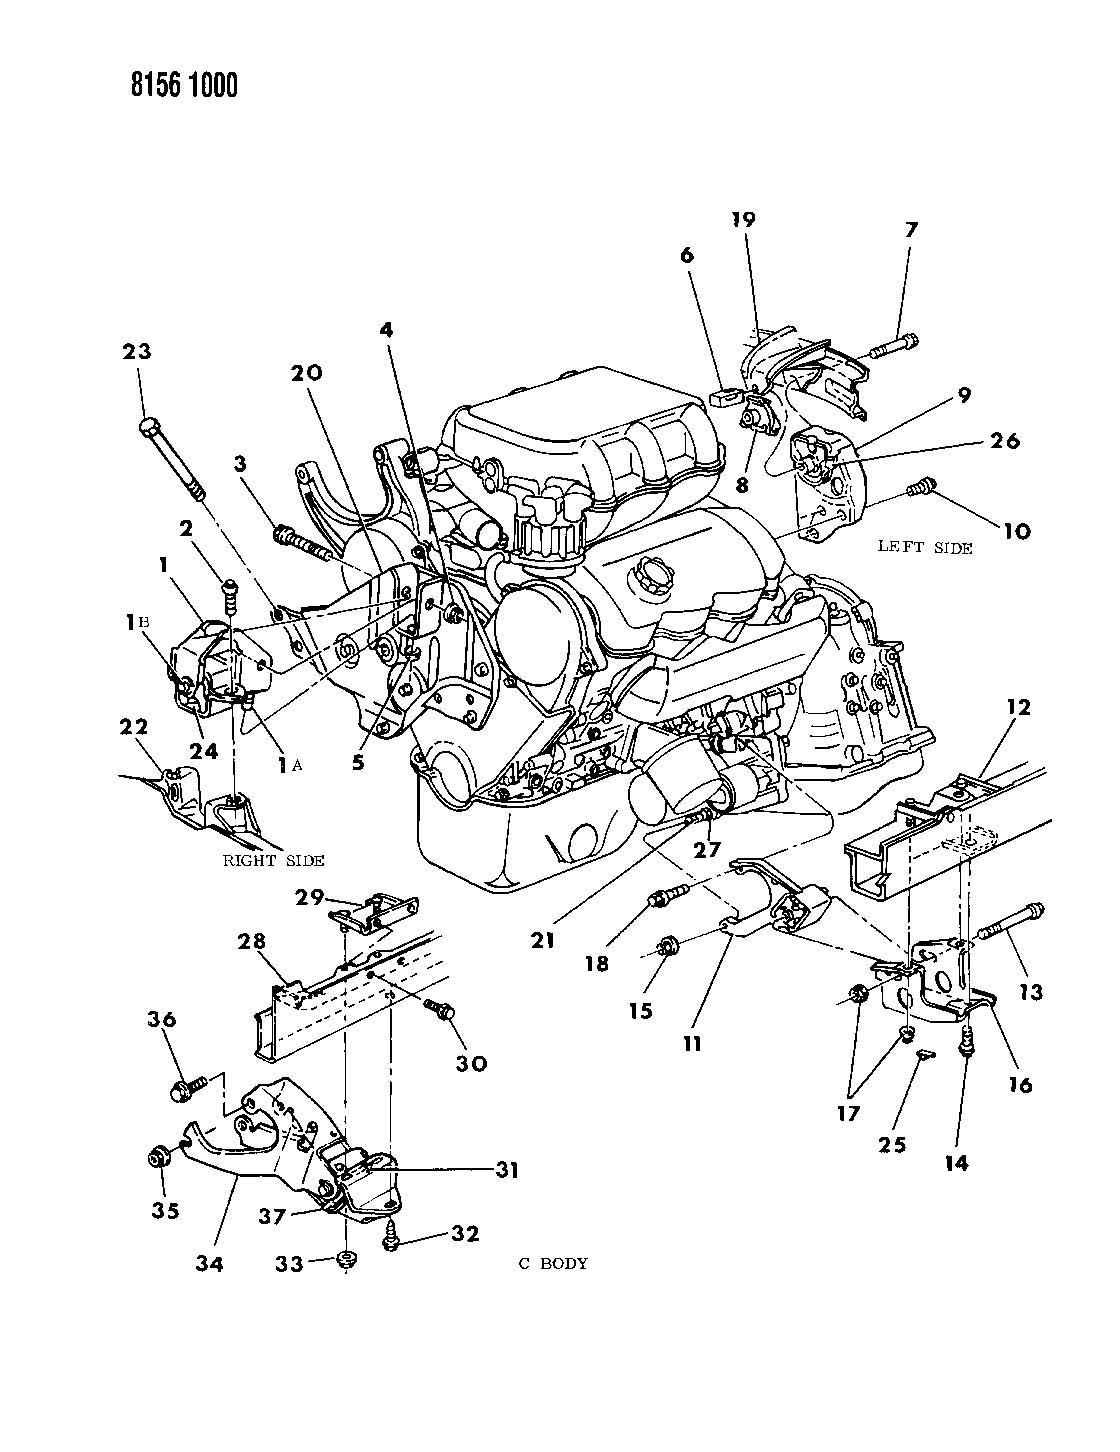 Plymouth Grand Voyager Engine Mounting 3 0 L Engine